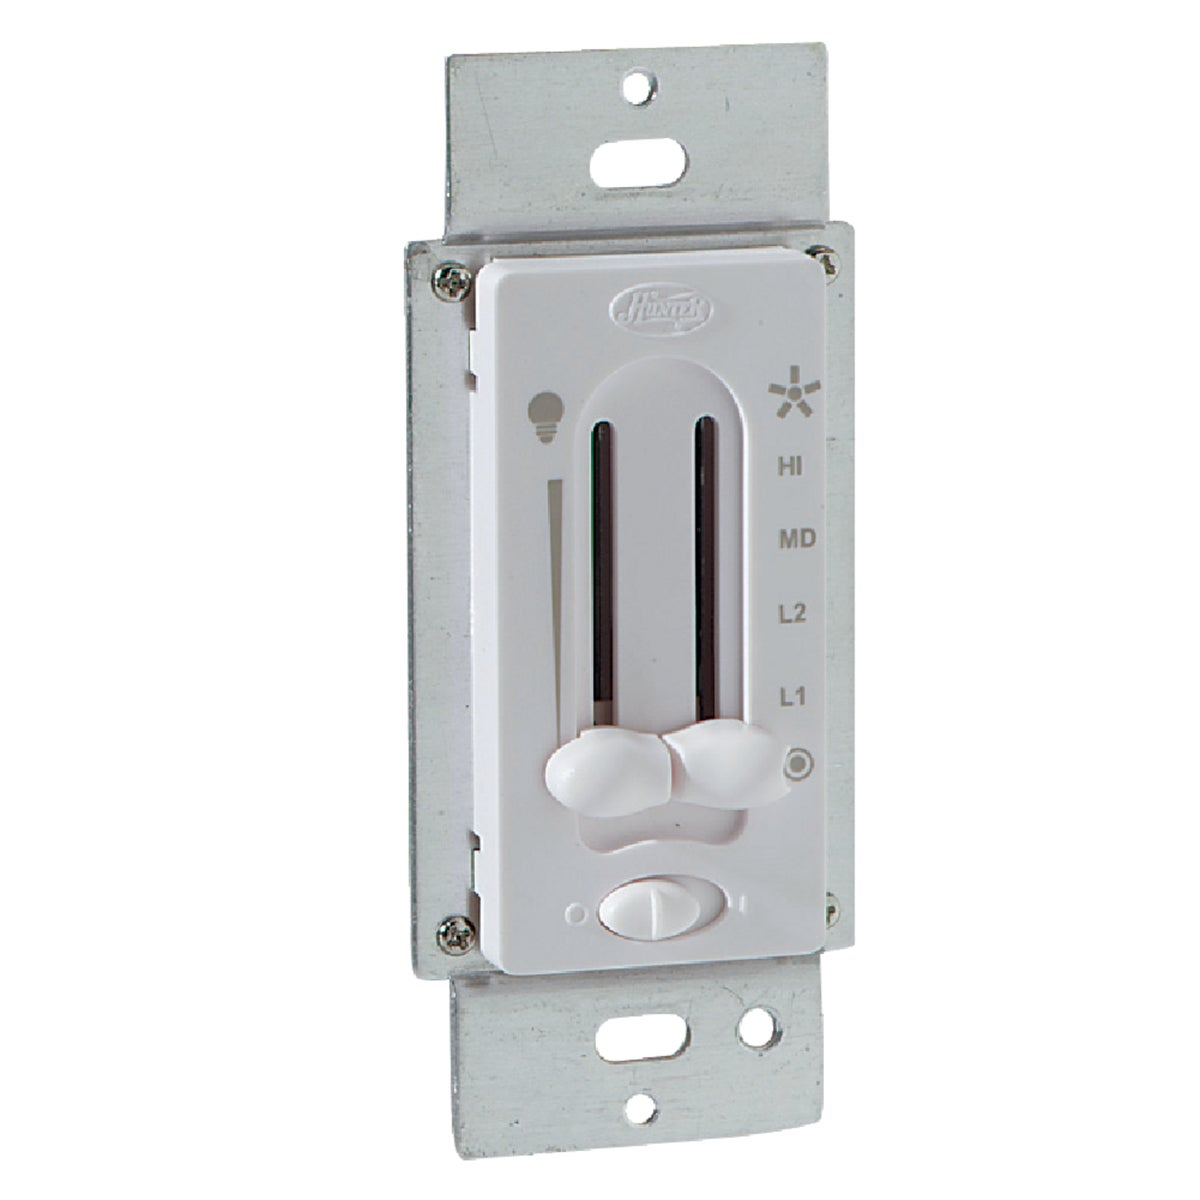 WHT FAN/LIGHT SWITCH - 27183 by Hunter Fan Co